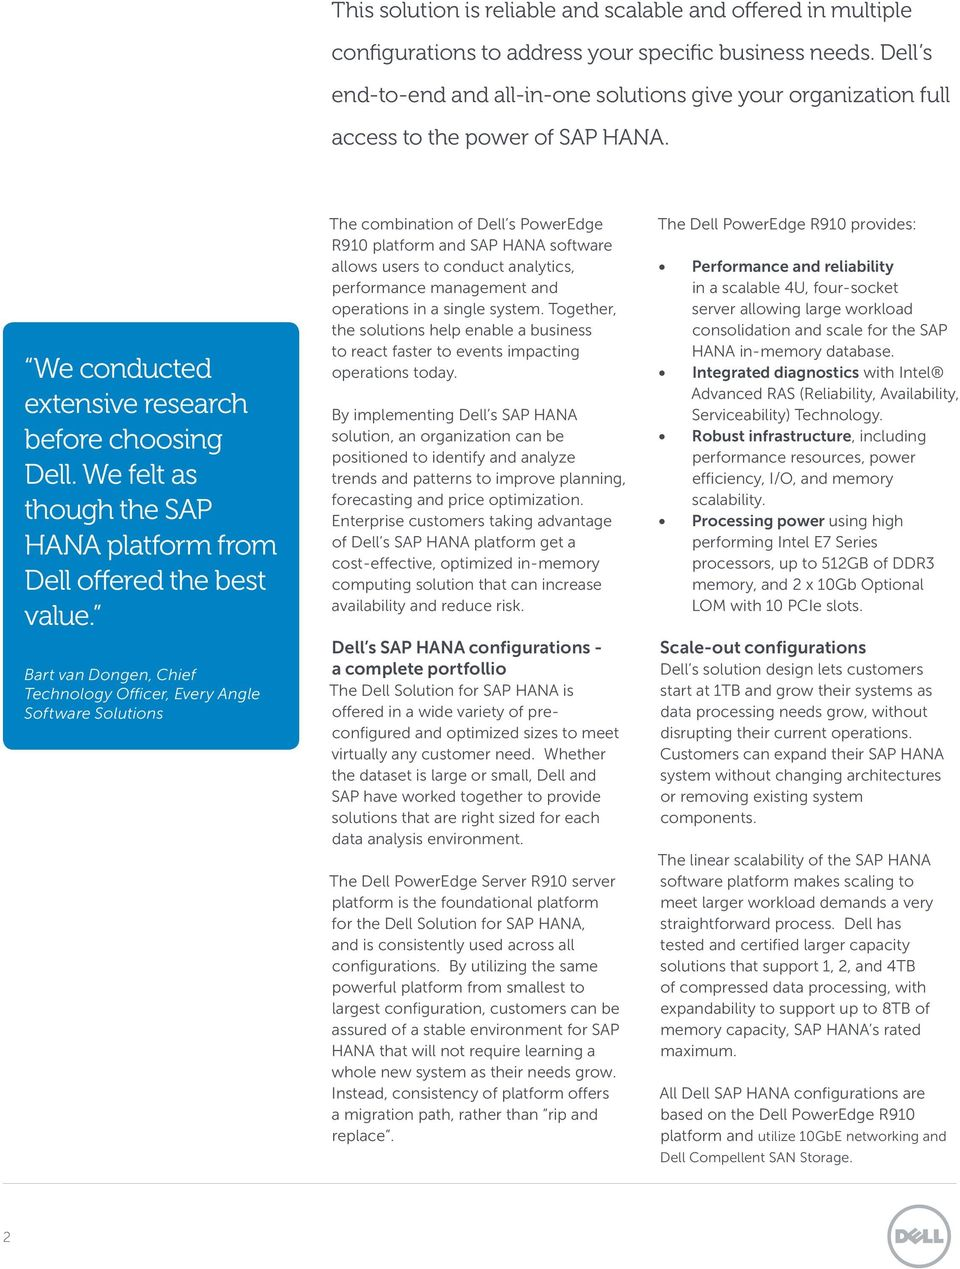 We felt as though the SAP HANA platform from Dell offered the best value.